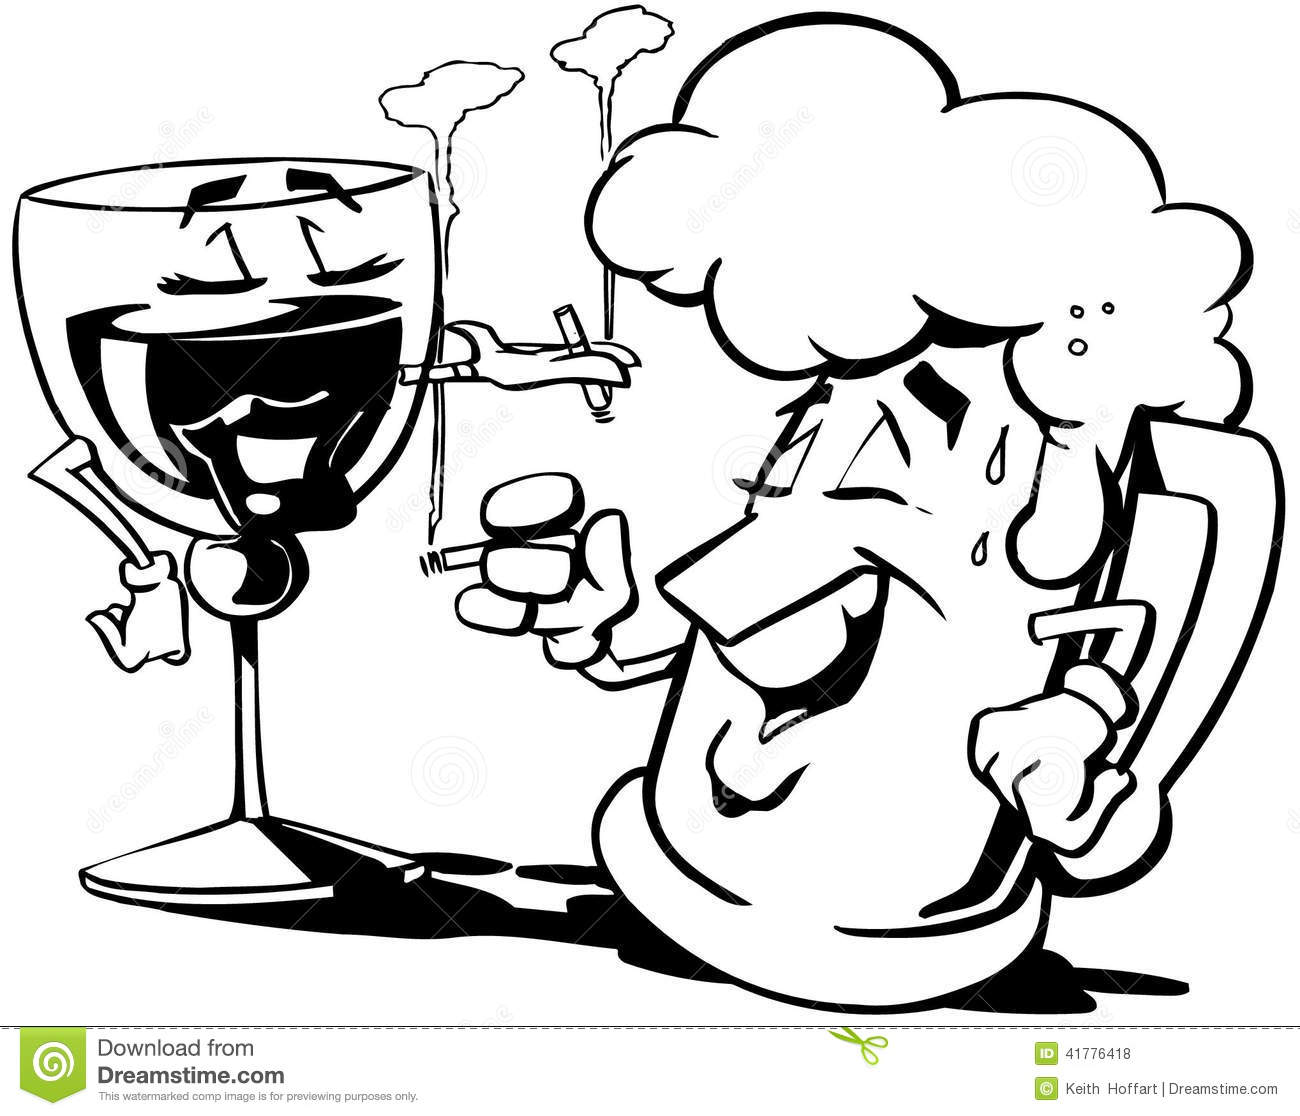 Bier und wein clipart picture black and white Martini And Beer Cartoon Vector Clipart Stock Vector - Image: 41776418 picture black and white